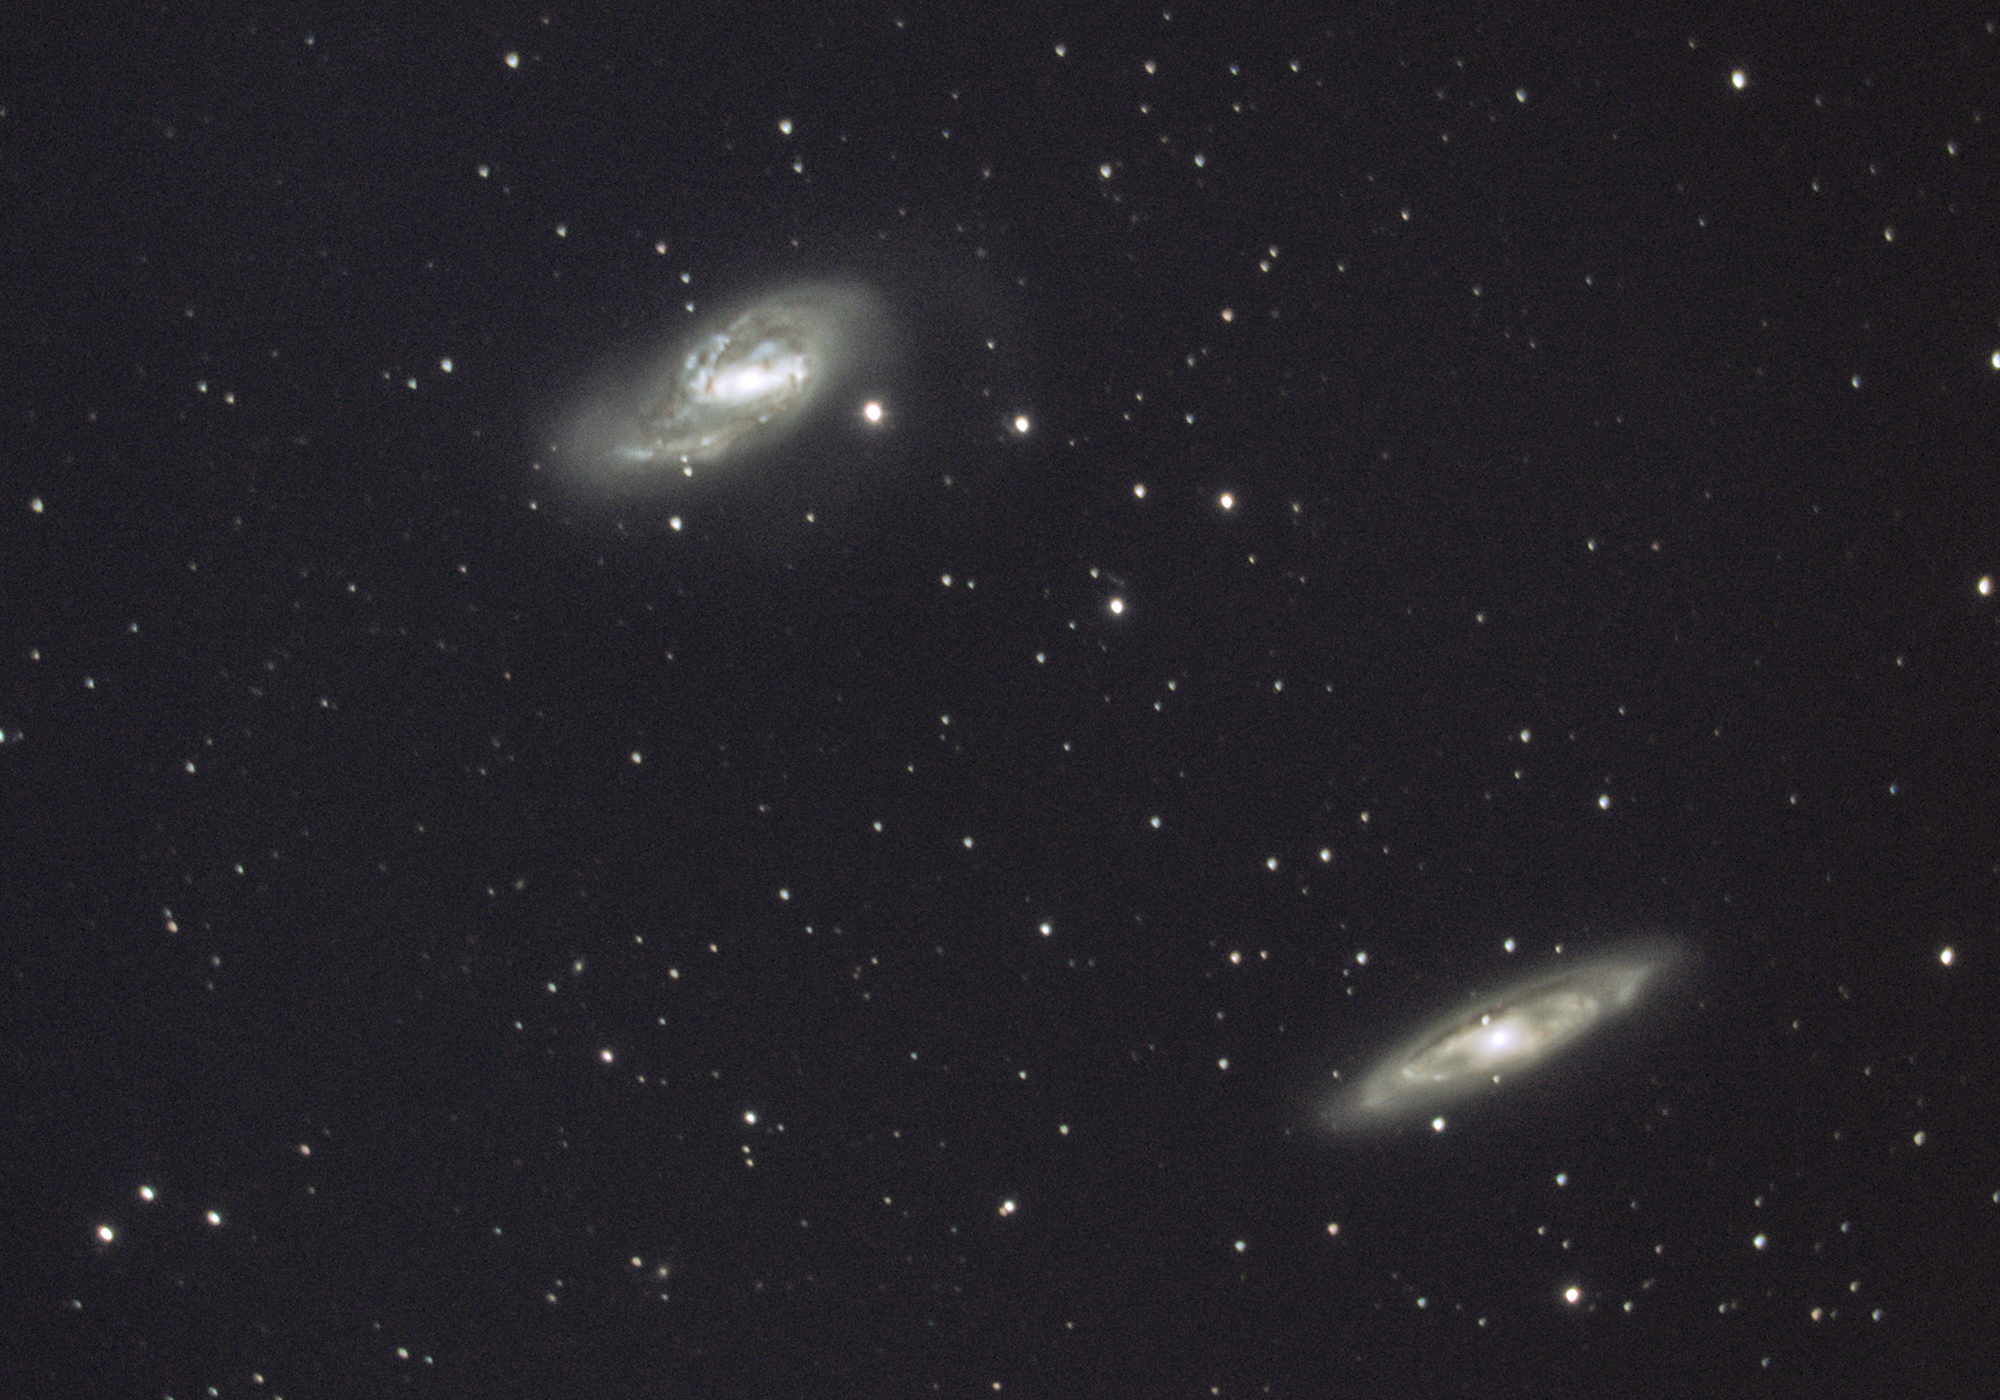 2/3 of the Leo Triplet: Messier 65 & Messier 66